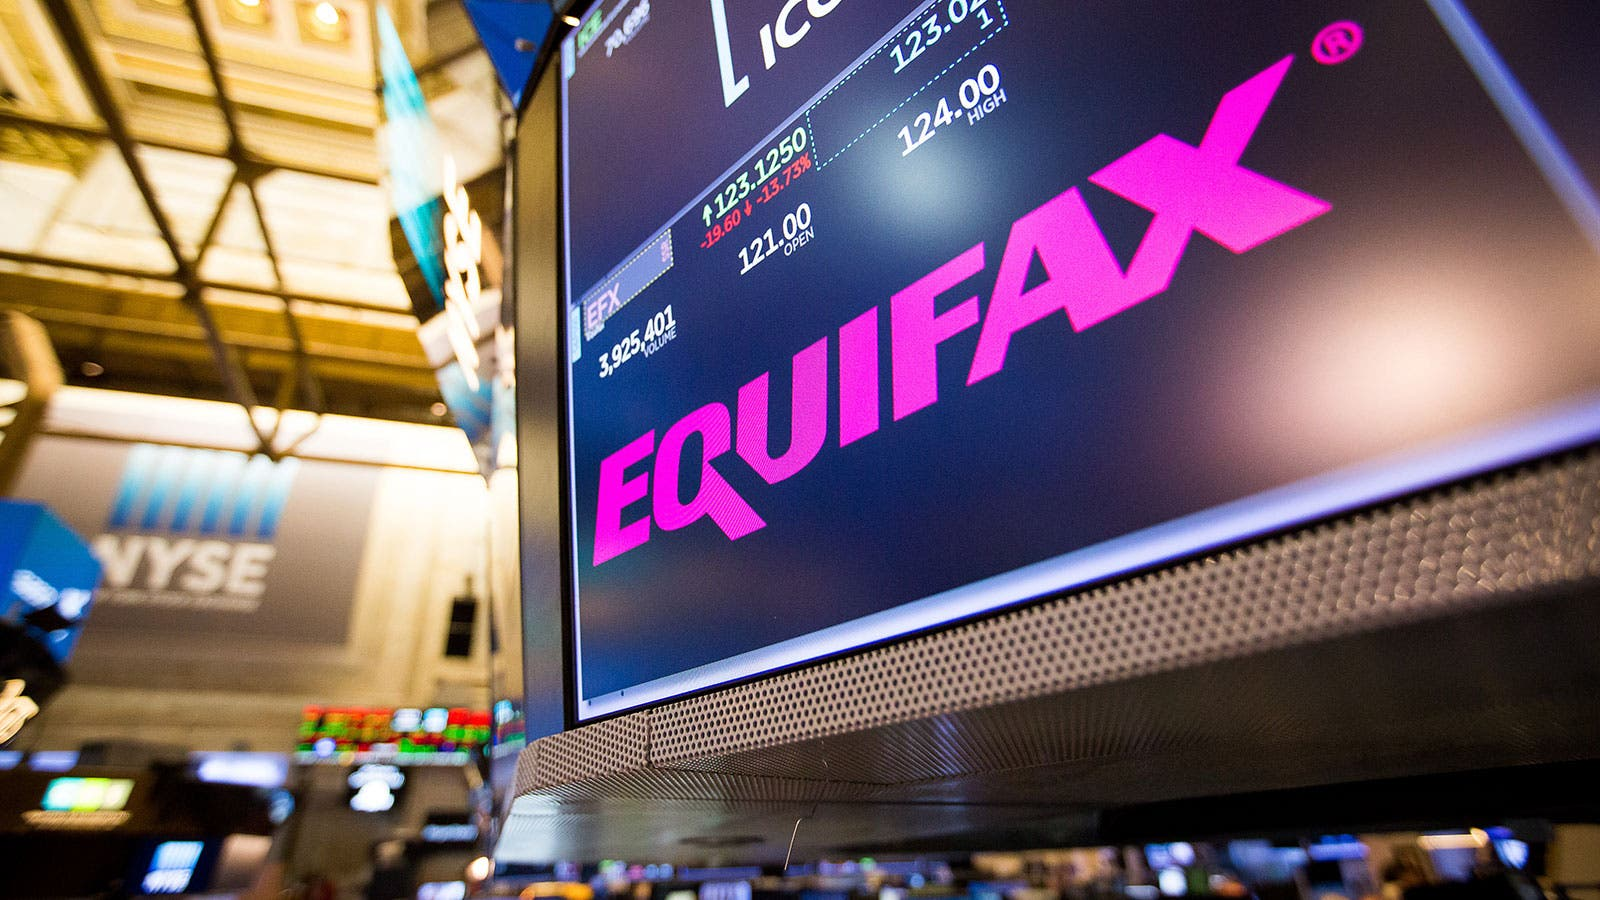 Protect your credit and identity after the Equifax breach Protect your credit and identity after the Equifax breach new pics